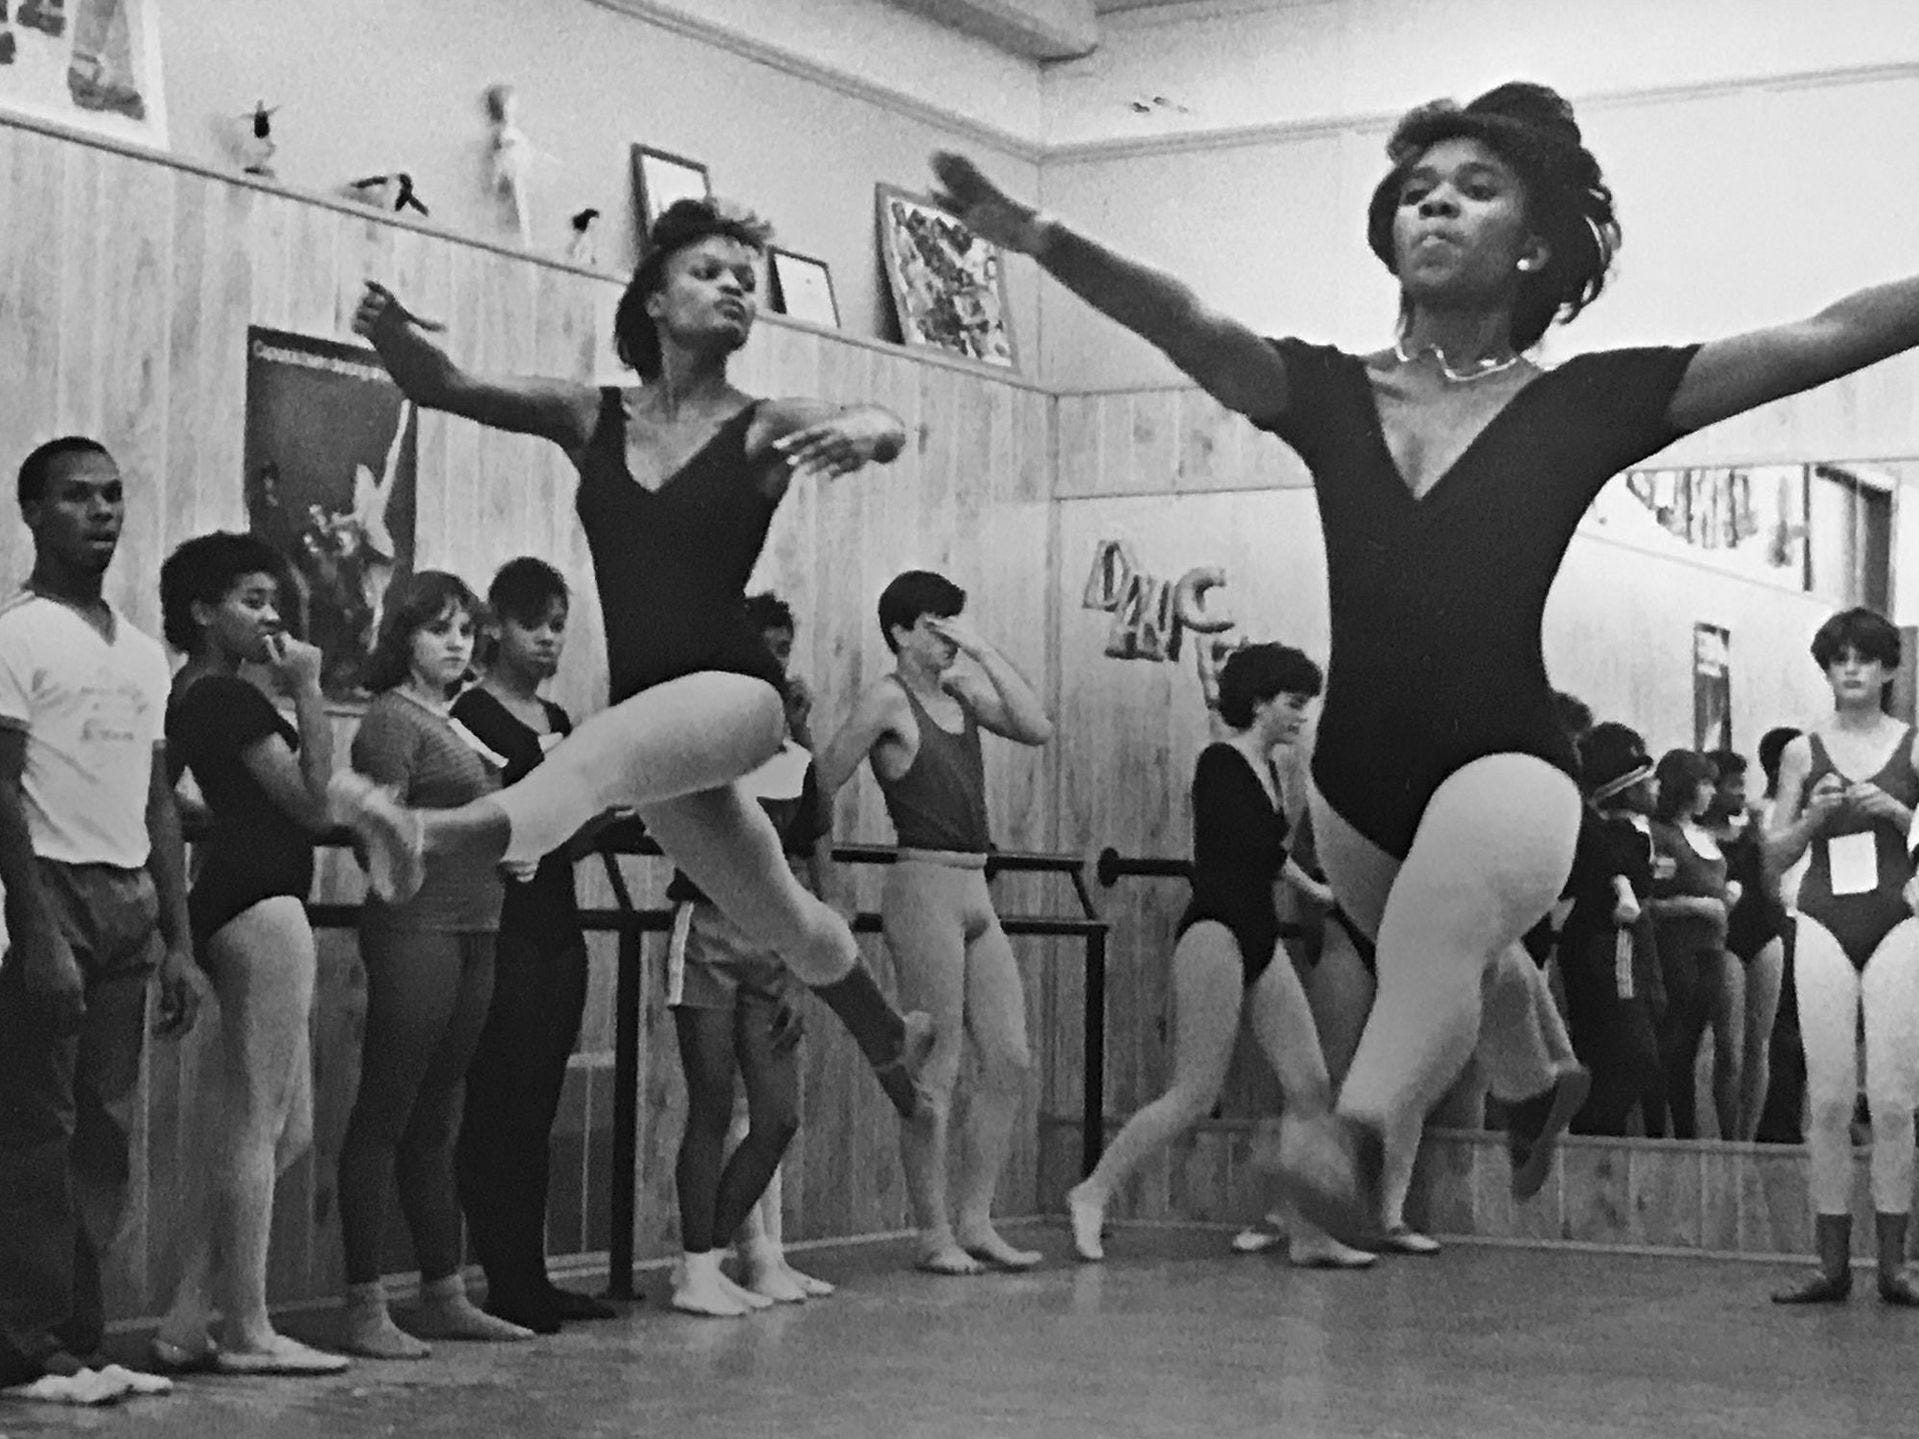 Broad Ripple Performing Arts faculty member Laura Hedges (far right, white shirt) oversees dance class in 1985.